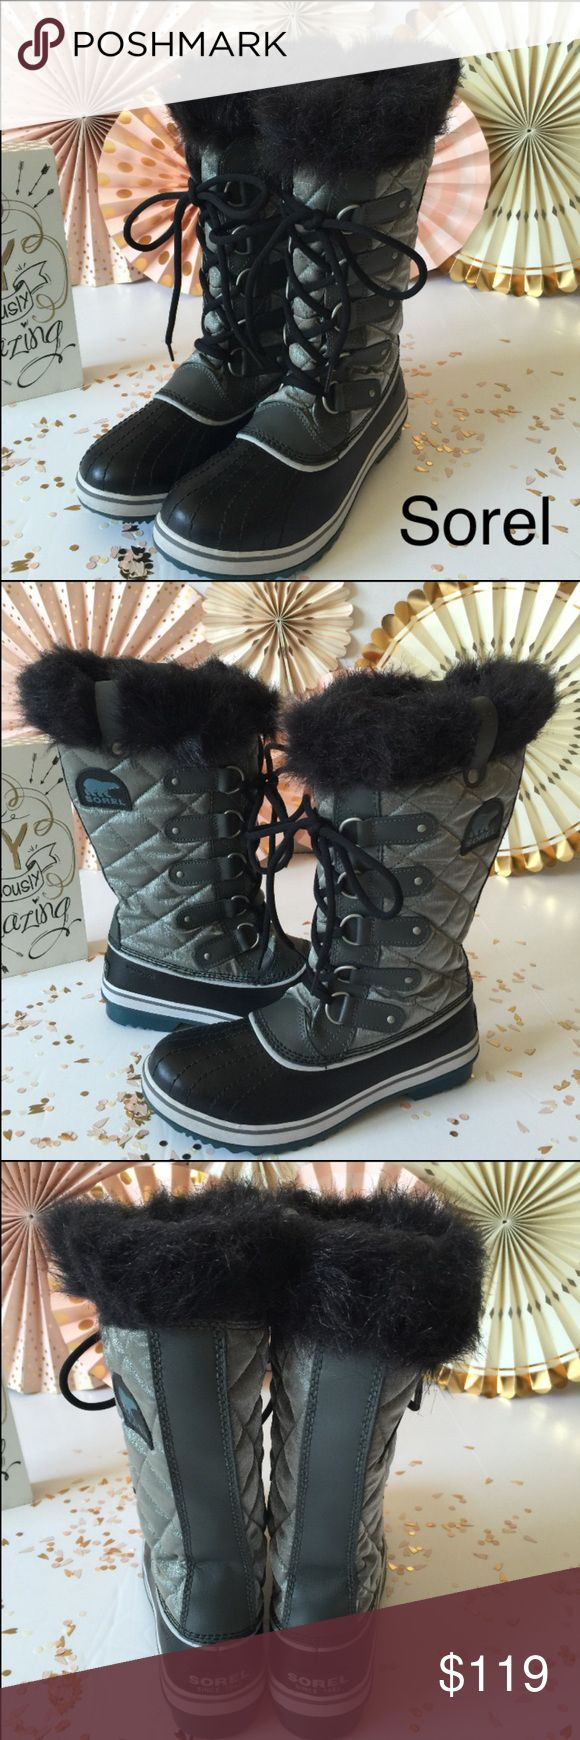 """Brand new Sorel Snow Boots ⛷☃ Care ☃☔️ A lightweight quilted upper is made of waterproof waxed canvas with a durable leather shell and topped with a fab faux-fur collar. A molded rubber outsole echoes the classic 1964 Pac boot and provides superb traction in slippery slush and snow. 1 1/2"""" heel. 1"""" platform (size 9) 11"""" boot shaft; 15"""" calf circumference. Approx. Adjusts to fit wide calves. Removable insole. Textile and leather upper/faux fur lining/rubber sole. By SOREL; Brand new without a…"""